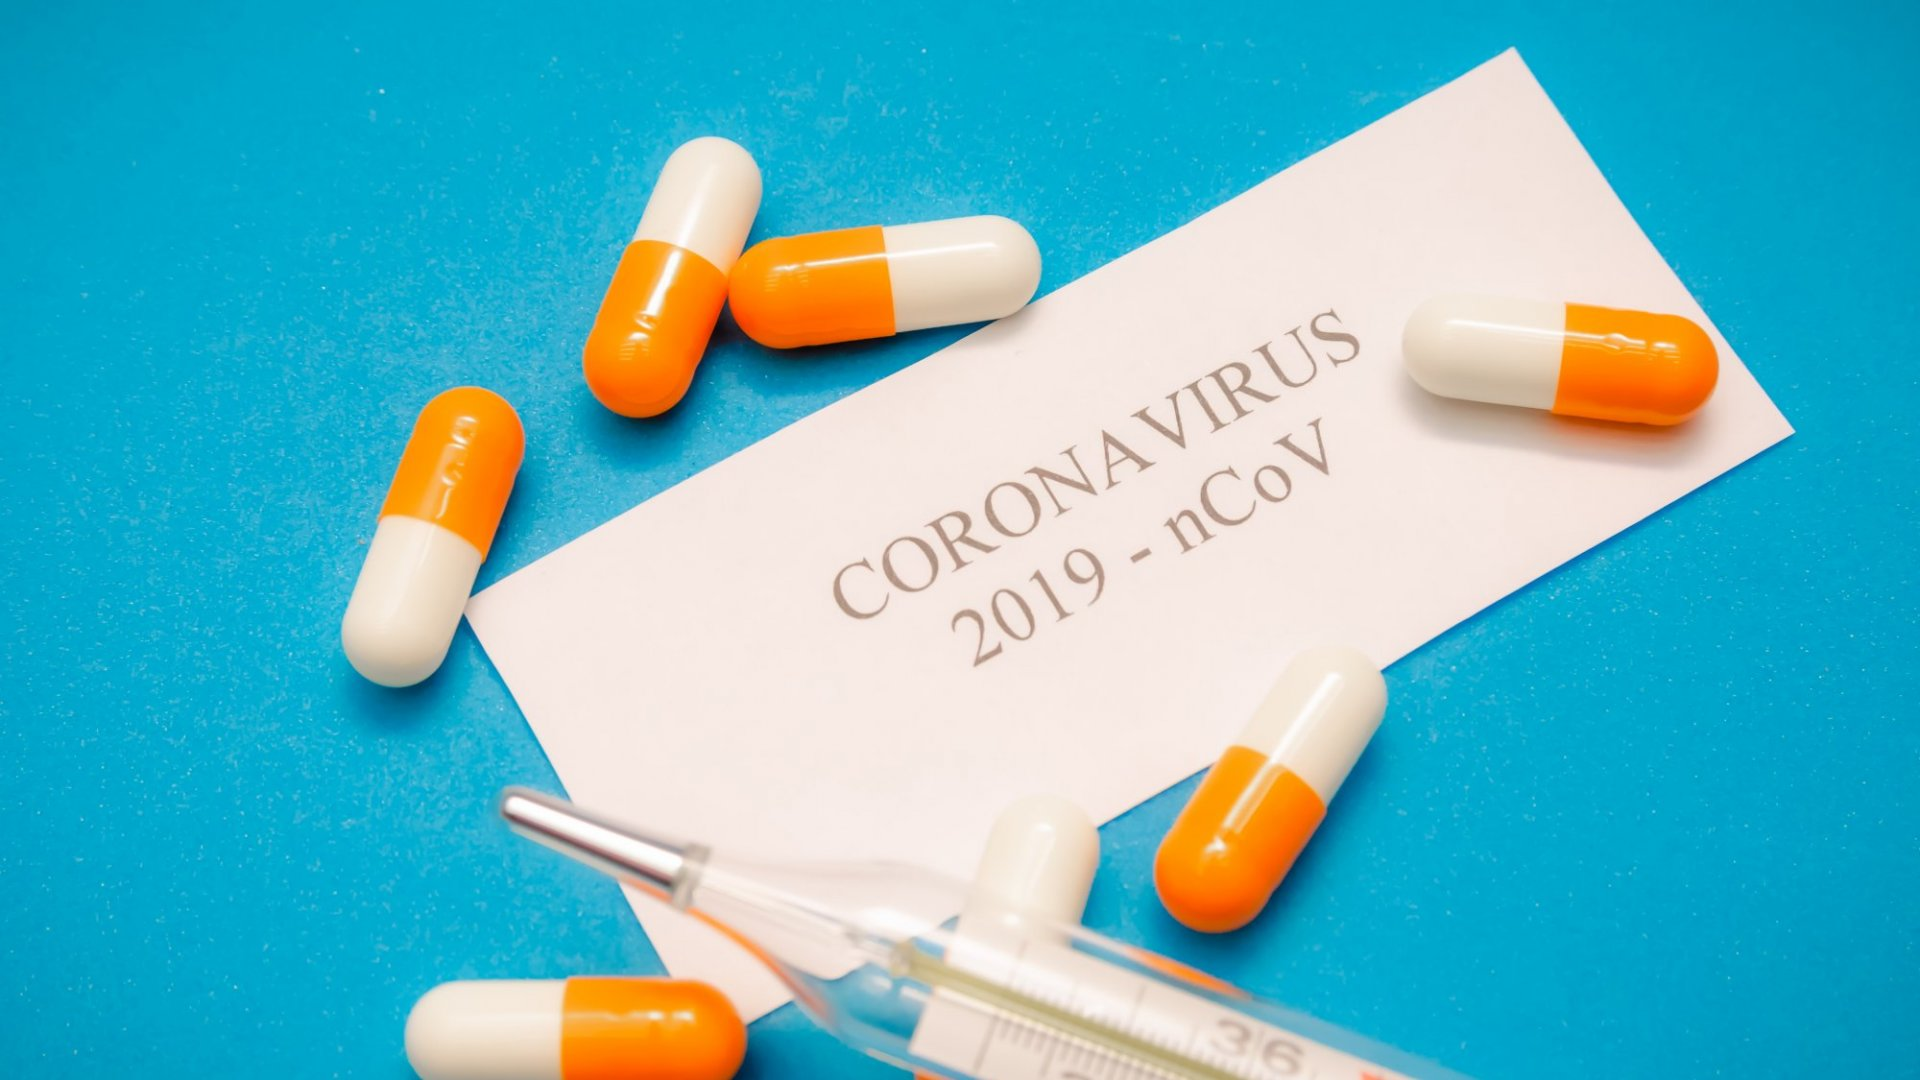 The Coronavirus and Travel Risk Management: This Is What You Need to Know